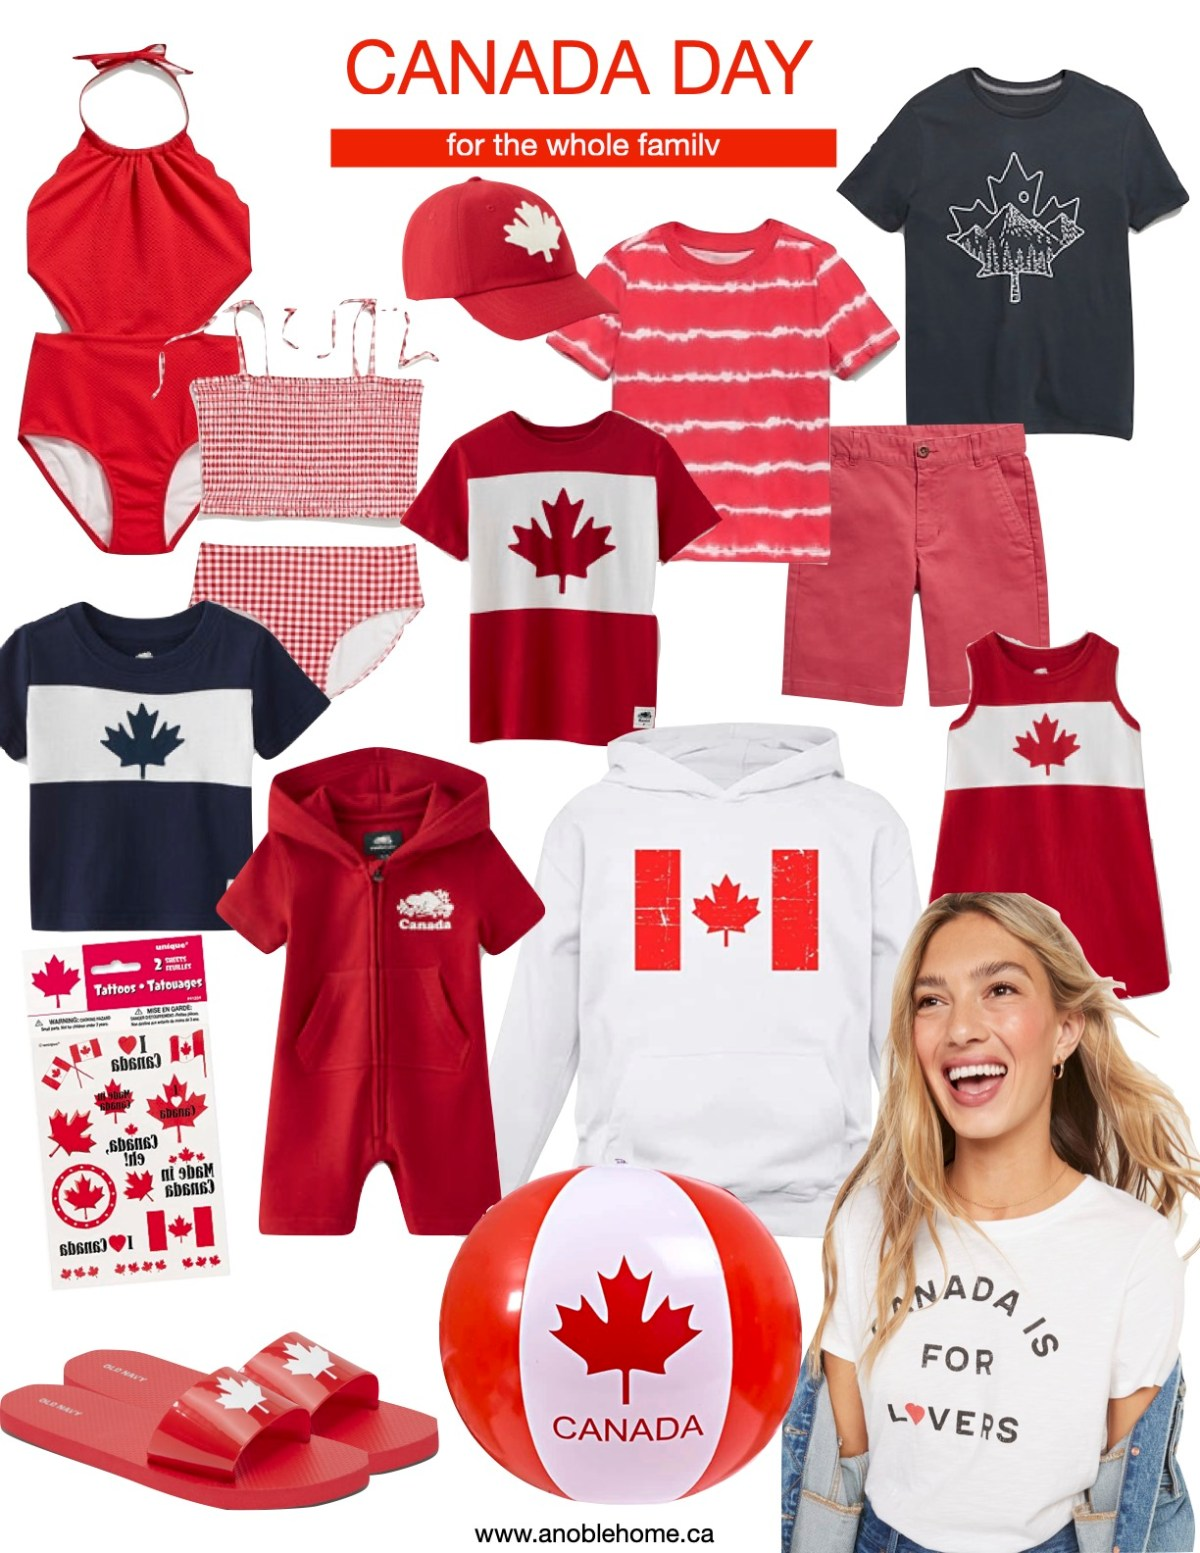 Canada Day Gear for the Whole Family